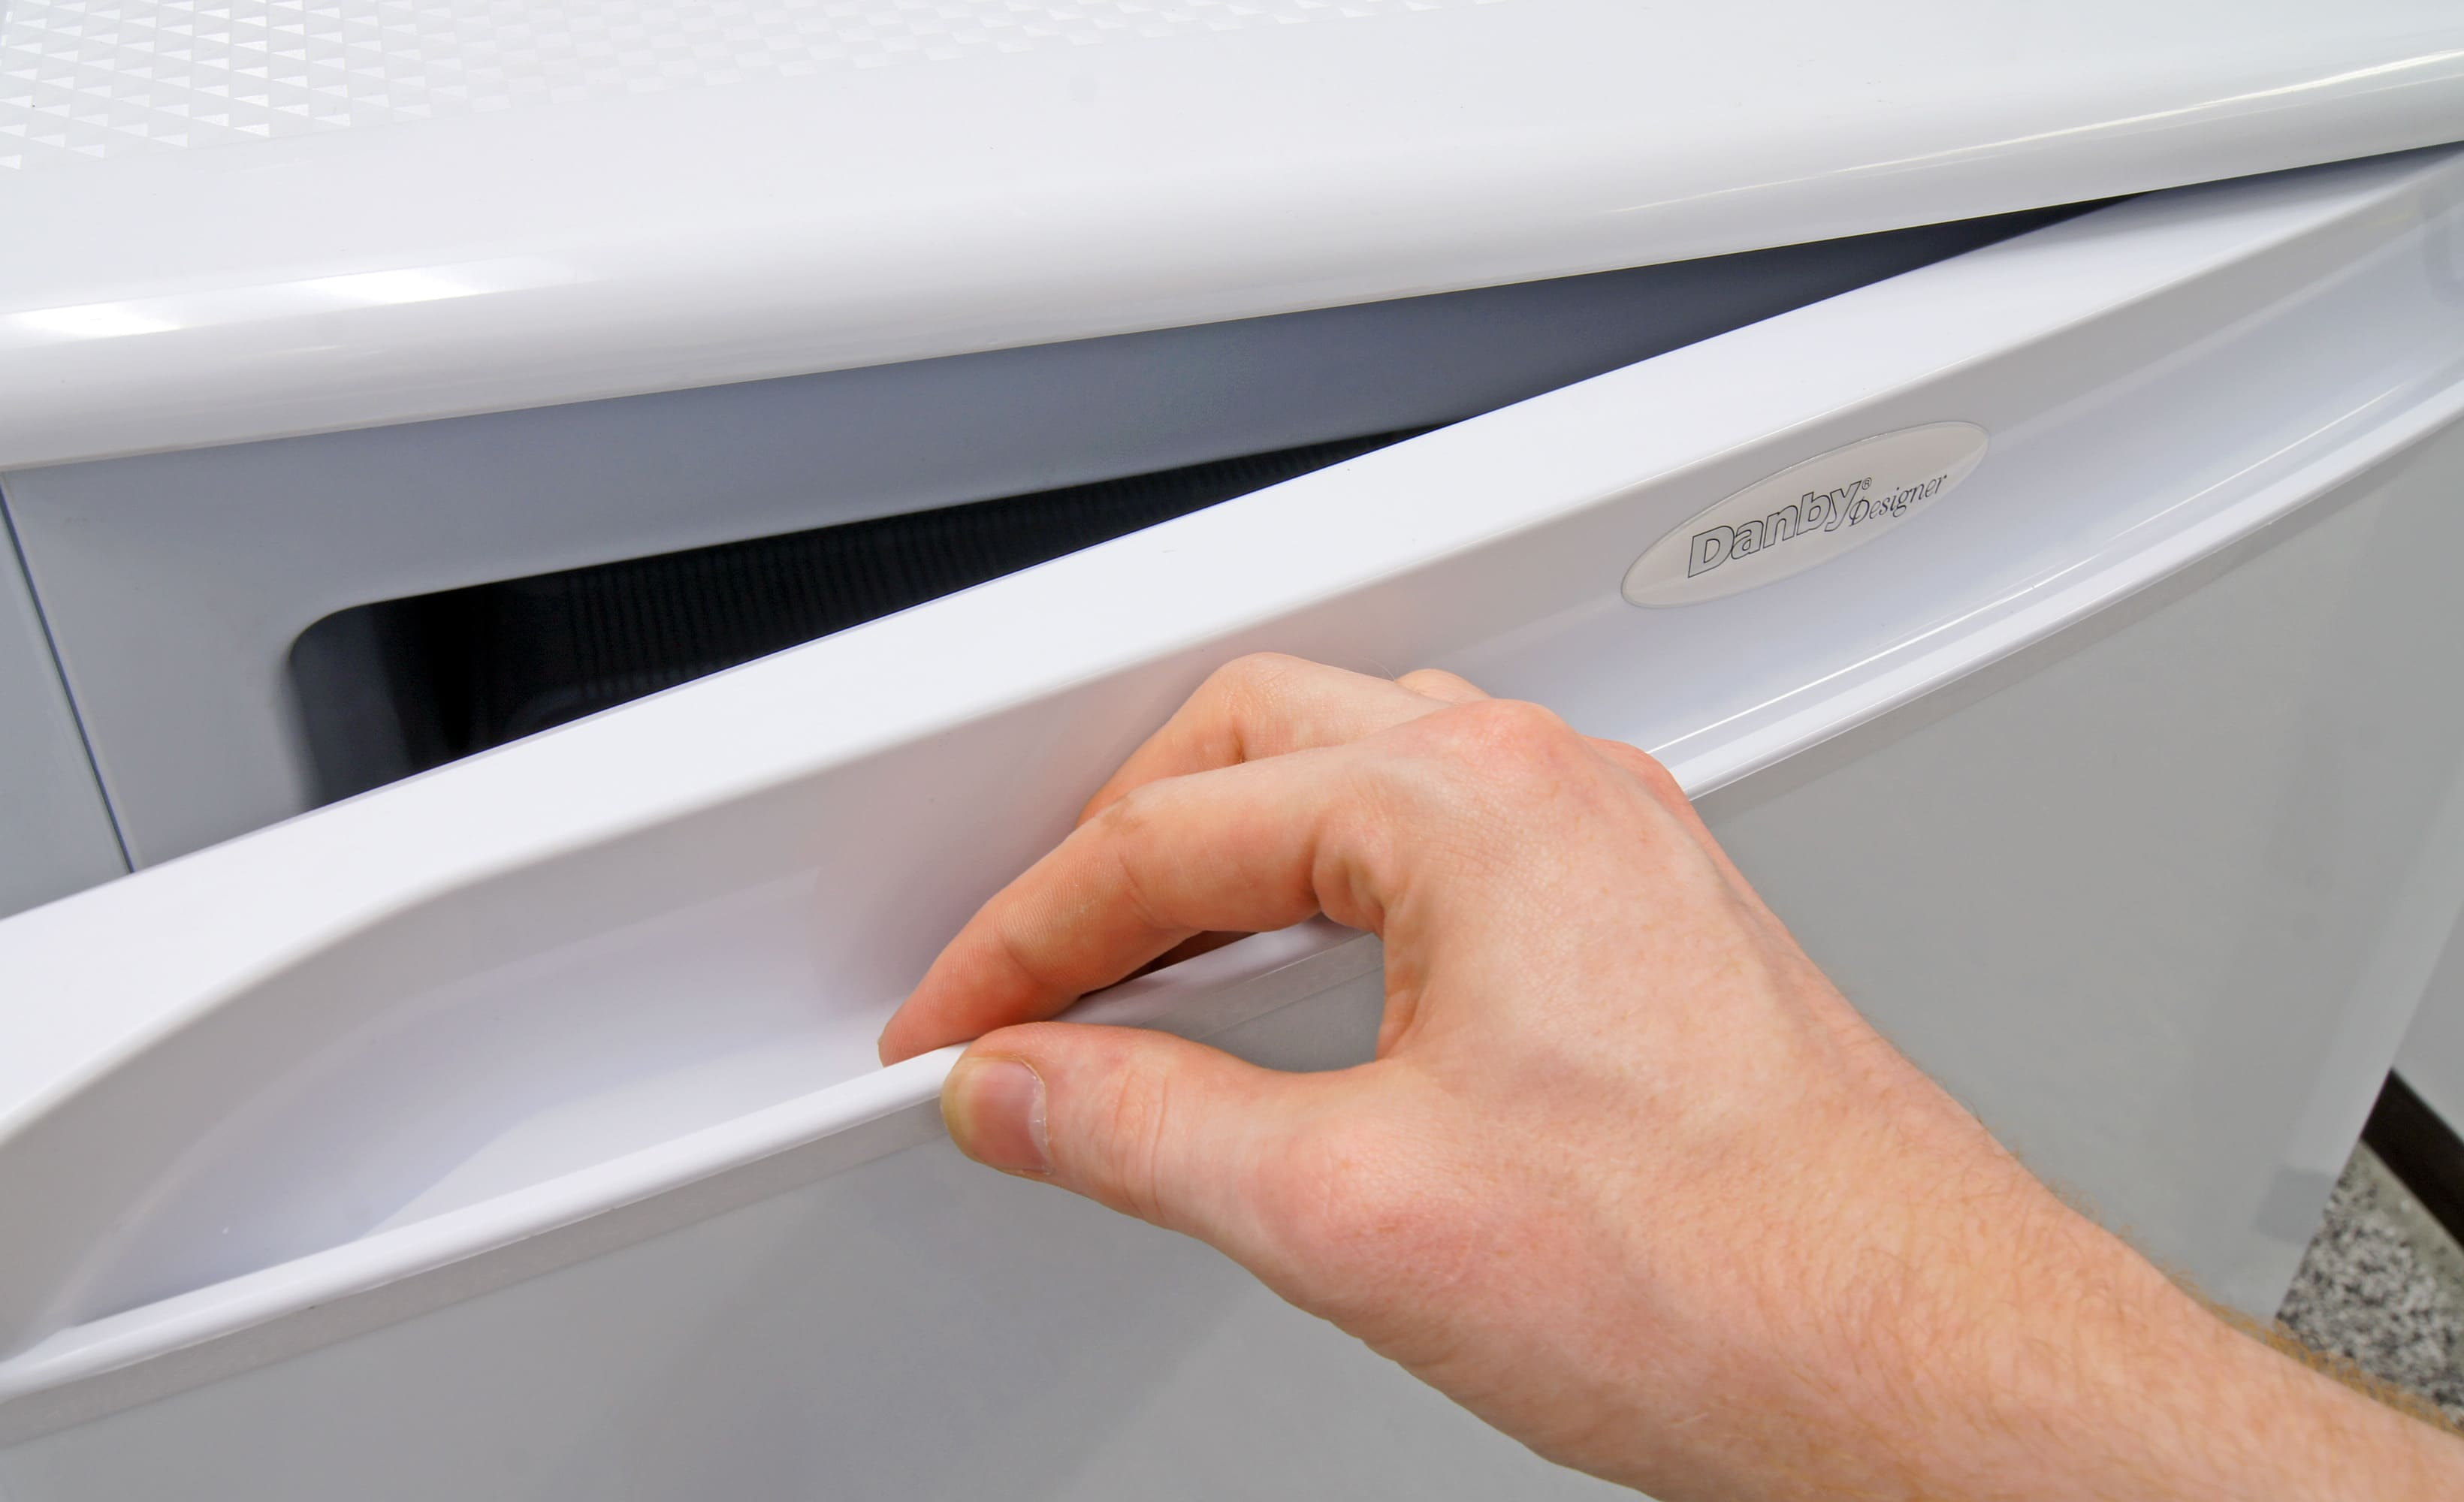 The recessed handle gives the Danby DUF408WE mini freezer a pleasant, seamless look.